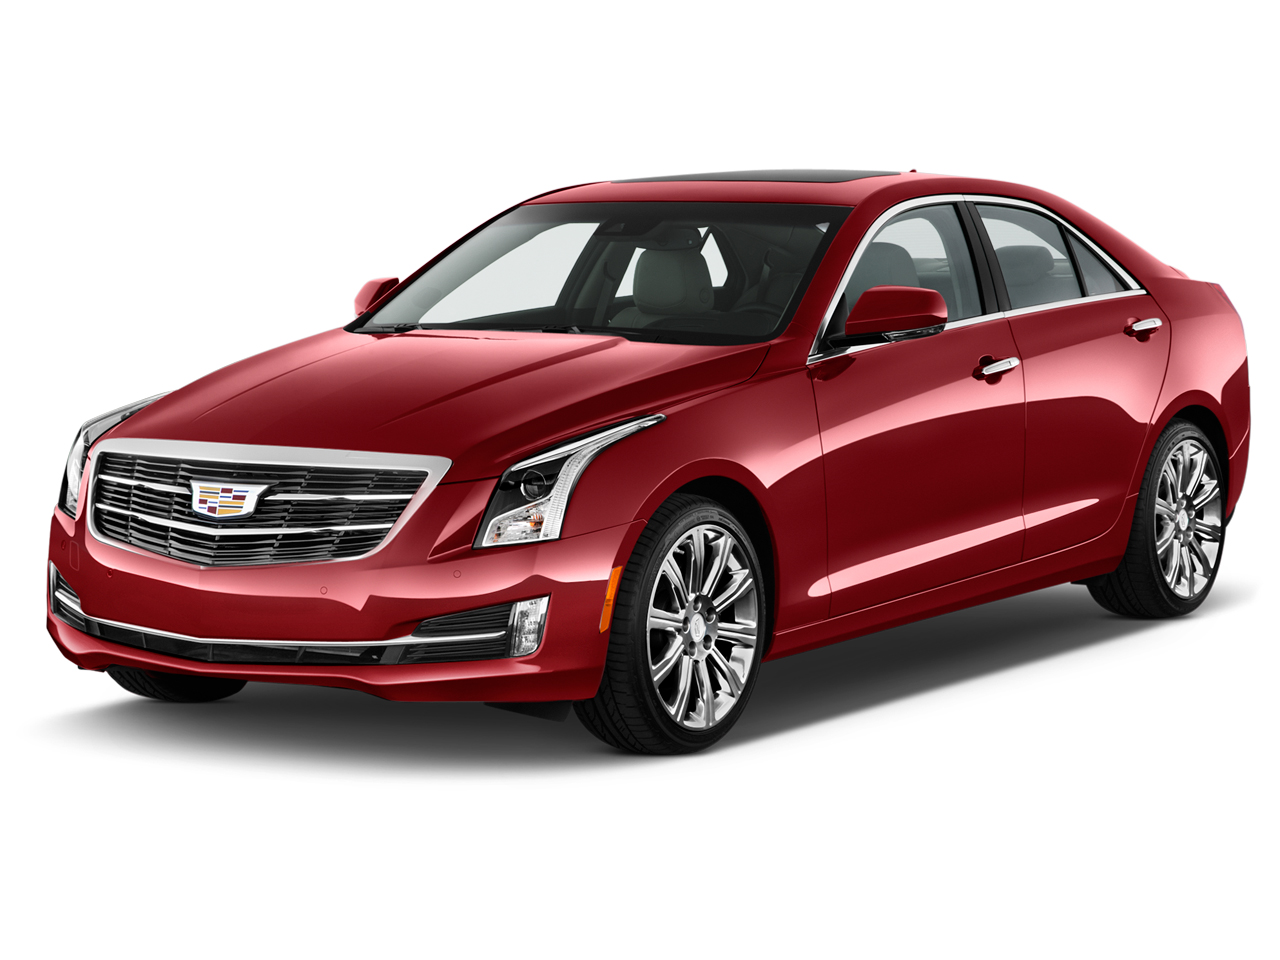 2018 Cadillac Ats Sedan Review Ratings Specs Prices